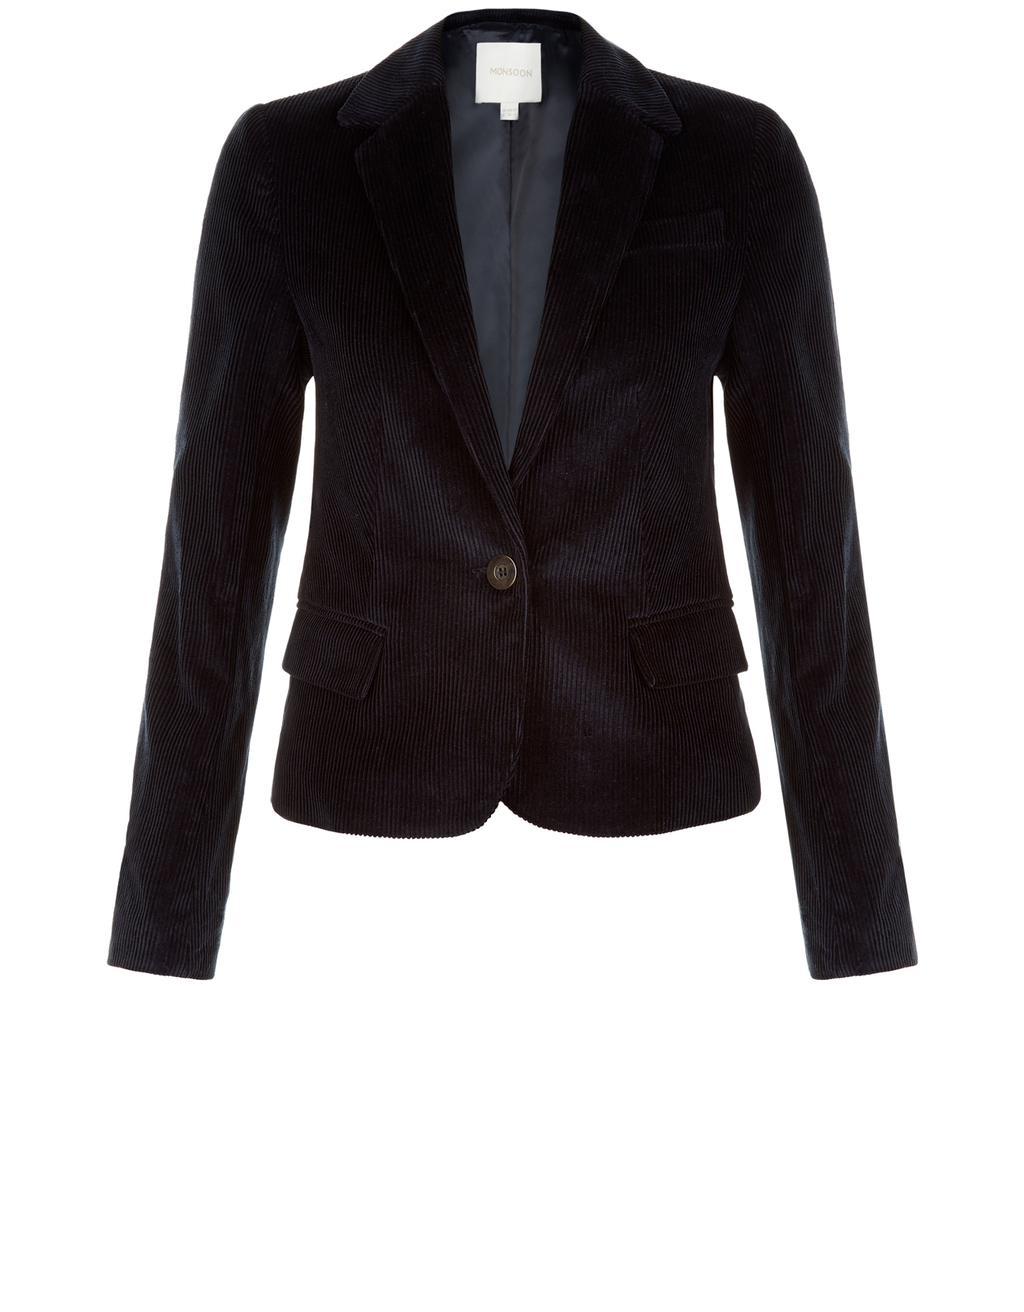 Ola Corduroy Jacket - pattern: plain; style: single breasted blazer; collar: standard lapel/rever collar; predominant colour: black; occasions: work, creative work; length: standard; fit: tailored/fitted; fibres: cotton - 100%; sleeve length: long sleeve; sleeve style: standard; texture group: corduroy; collar break: medium; pattern type: fabric; season: a/w 2016